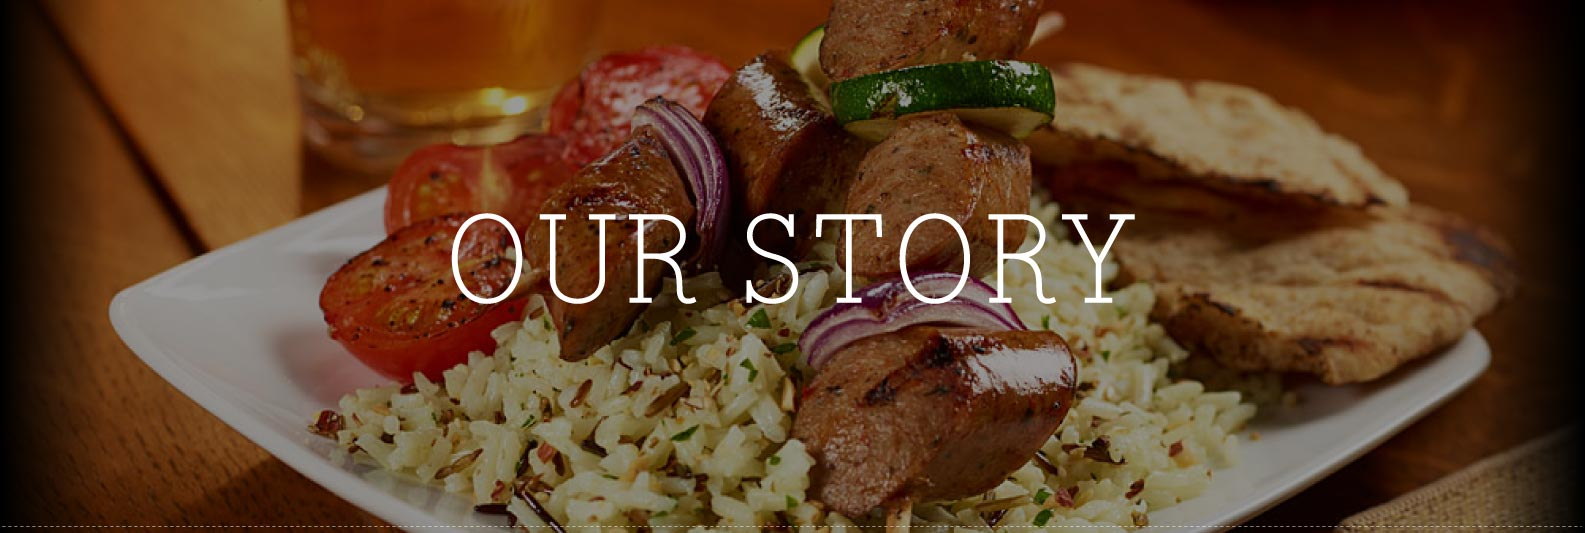 Our Story - Chef's Craft Gourmet by Wayne Farms